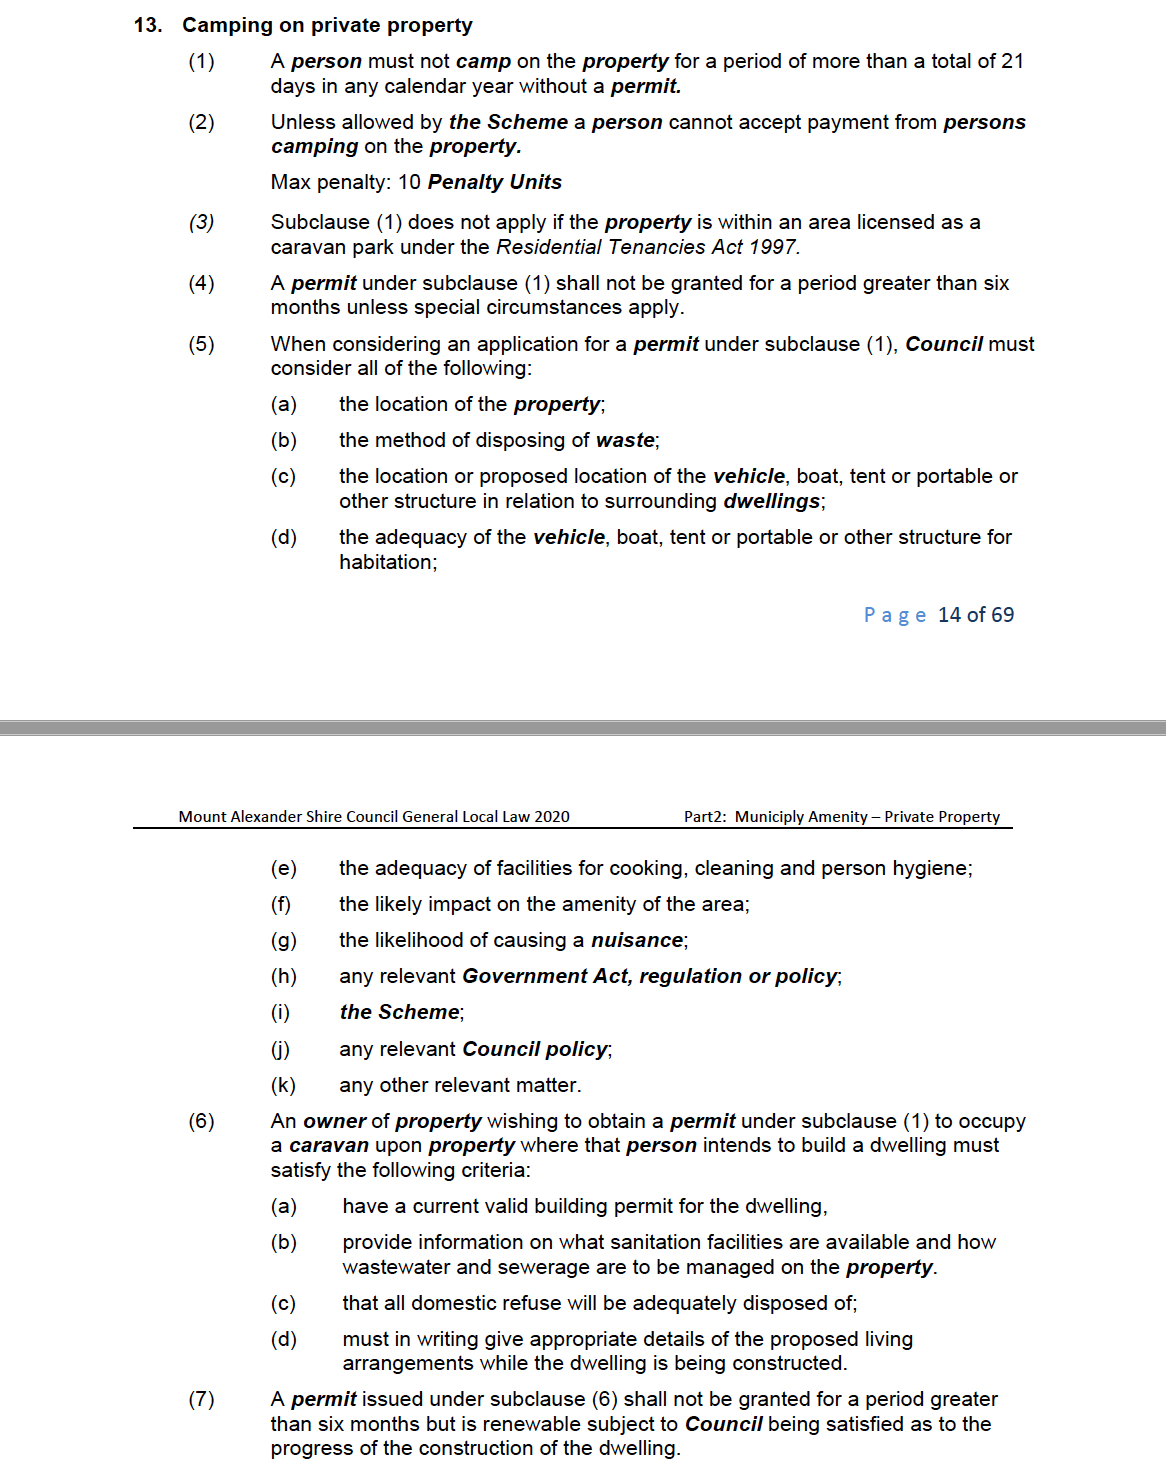 DRAFT Proposed Local Law Section 13 - Camping on Private Property - Mt Alexander Shire Council (2020)